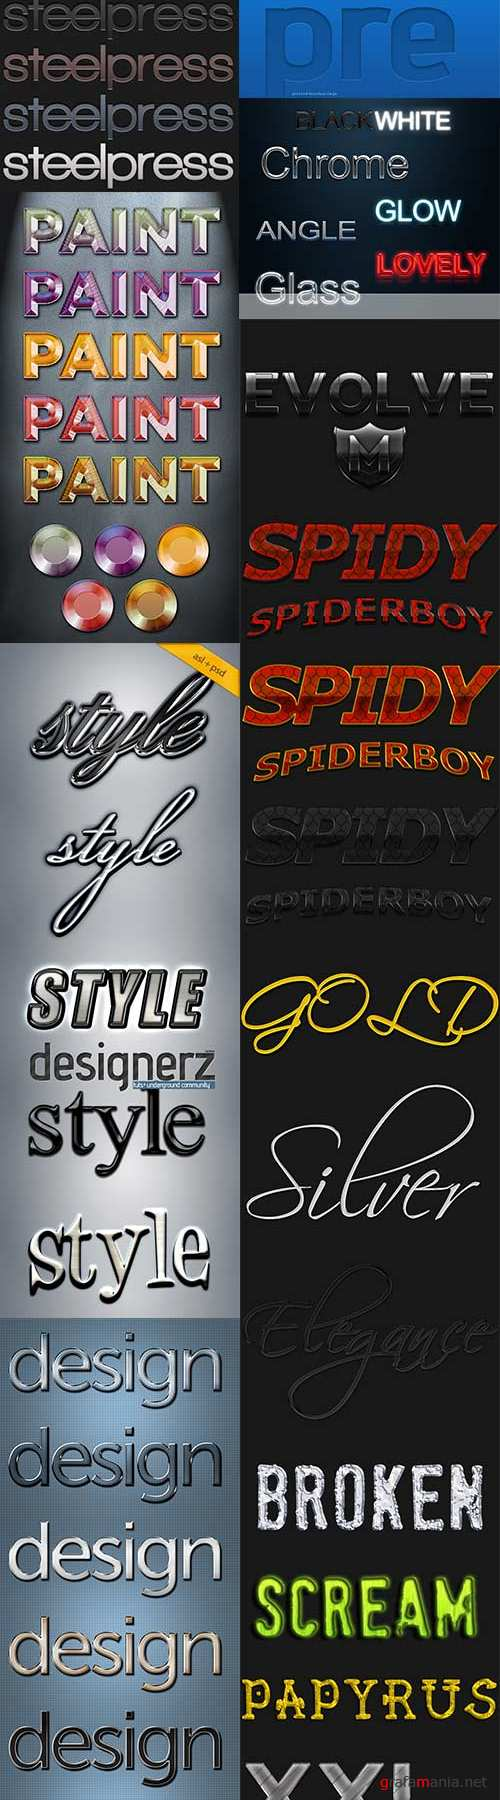 Different styles for photoshop